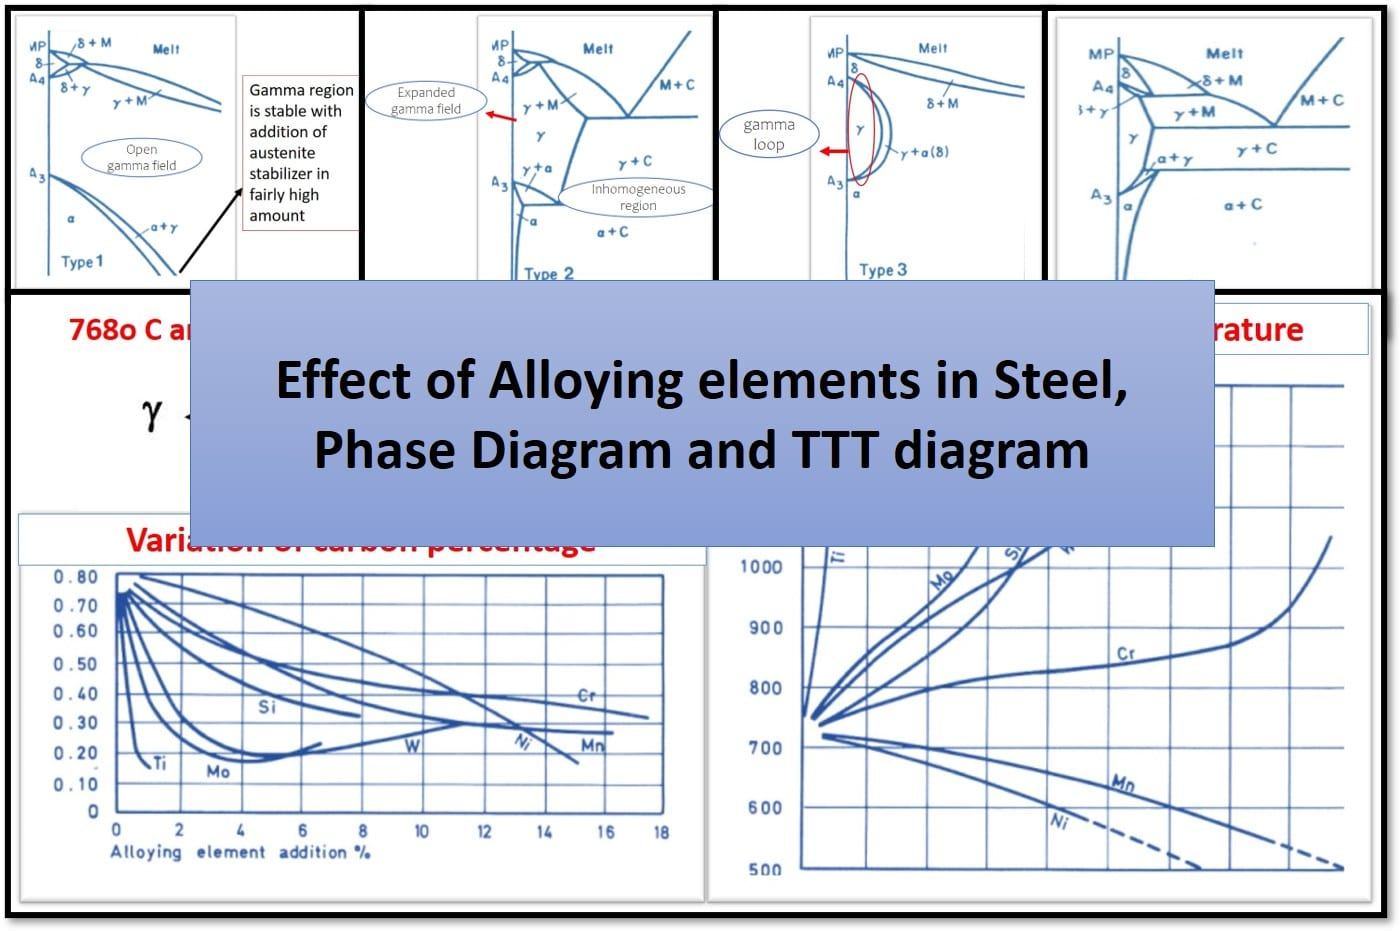 Effect of alloying elements in Steel, Phase Diagram and TTT diagram